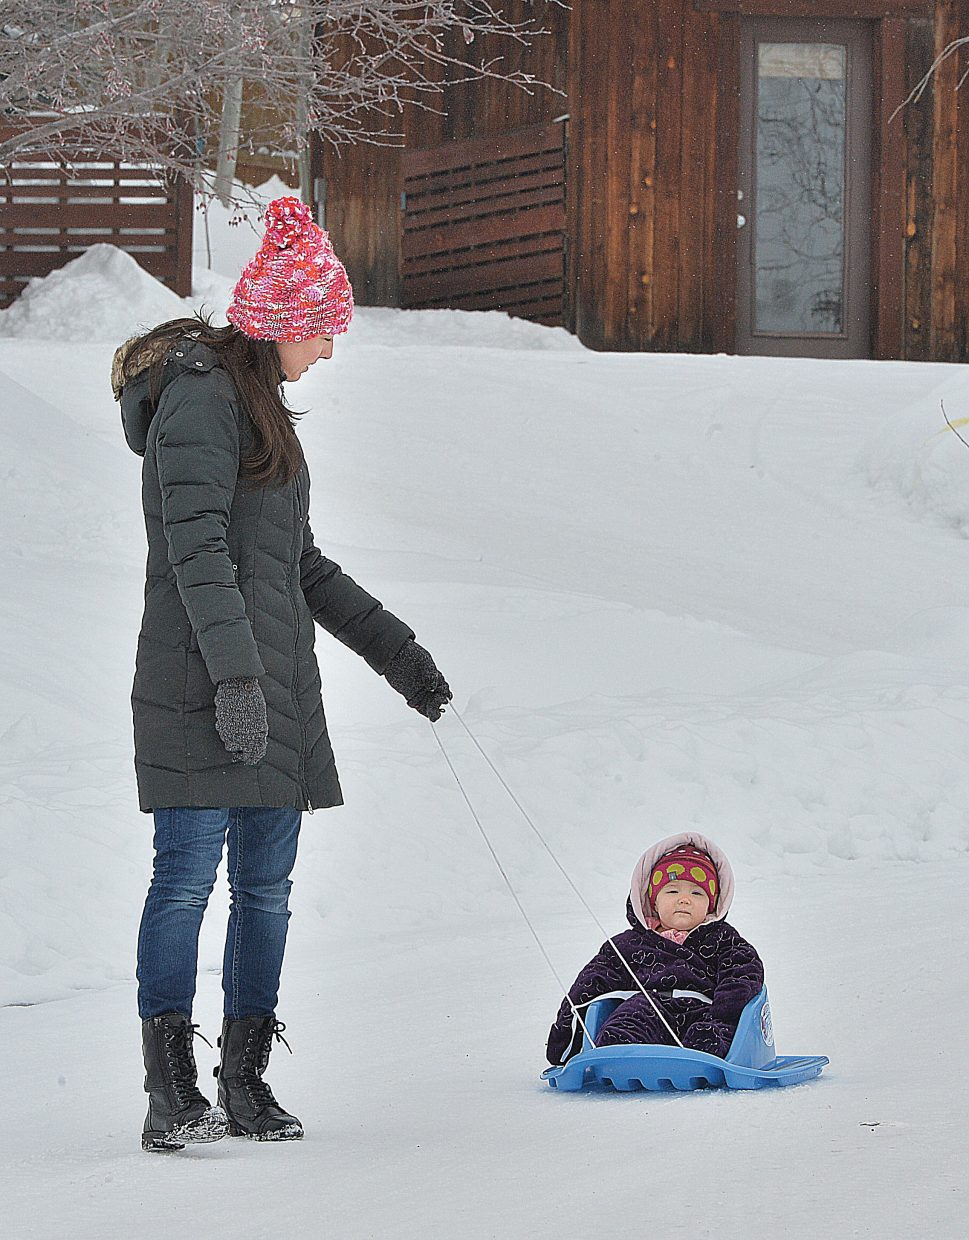 Lora Labaree and her young daughter, Aspen, didn't let the snow-packed and icy roads in the Steamboat II Subdivision stop them from getting around Friday morning. Lora simply grabbed a slid and Aspen was able to ride to the park, which is near their home.